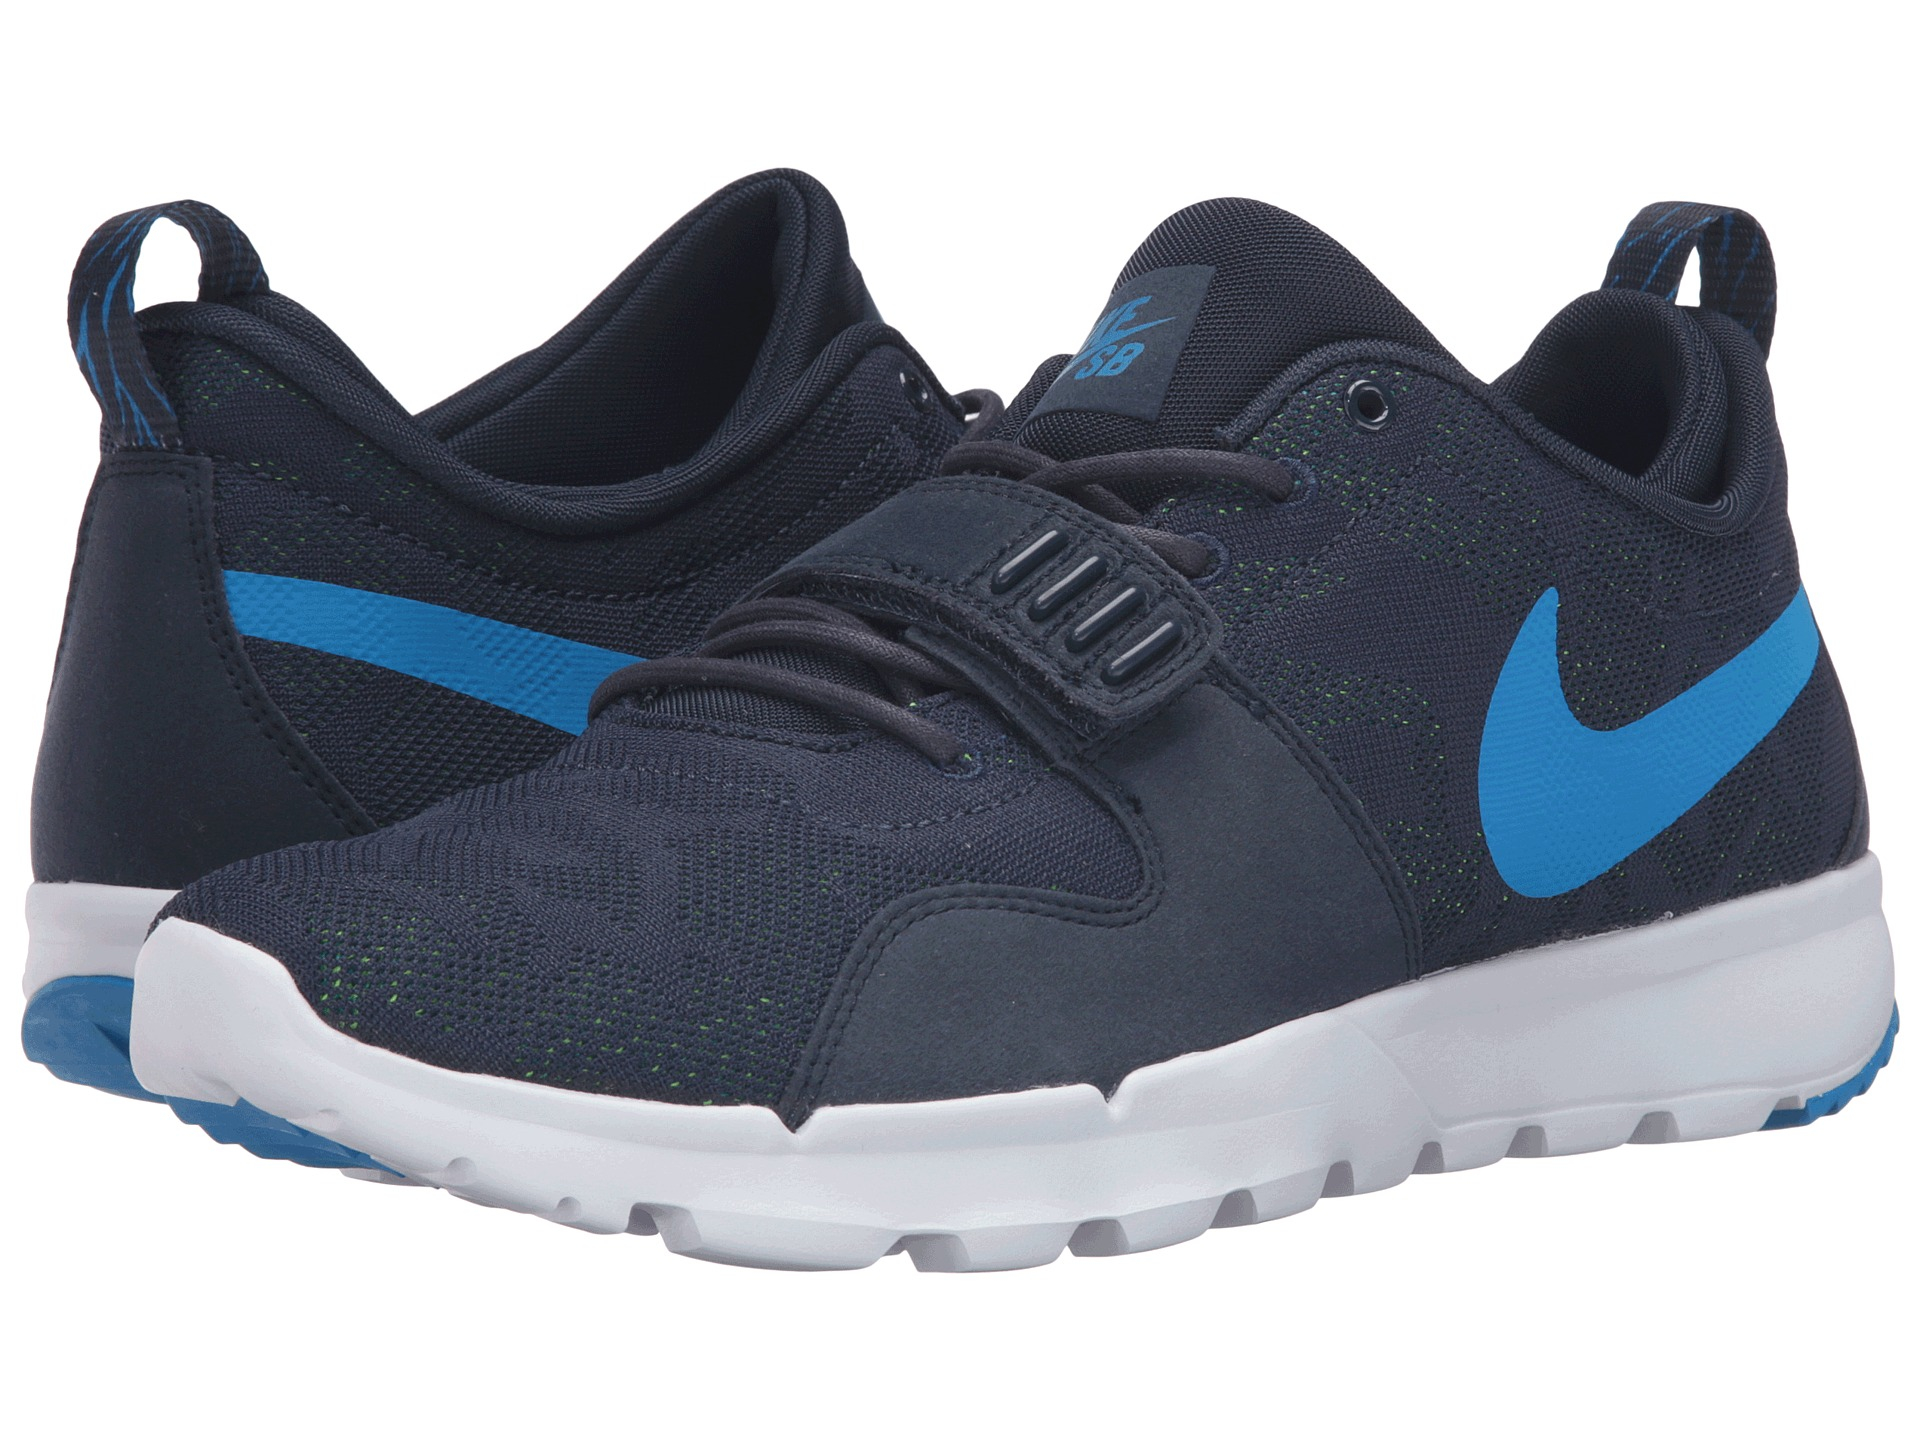 the best attitude cbfc6 fe397 Lyst - Nike Trainerendor for Men